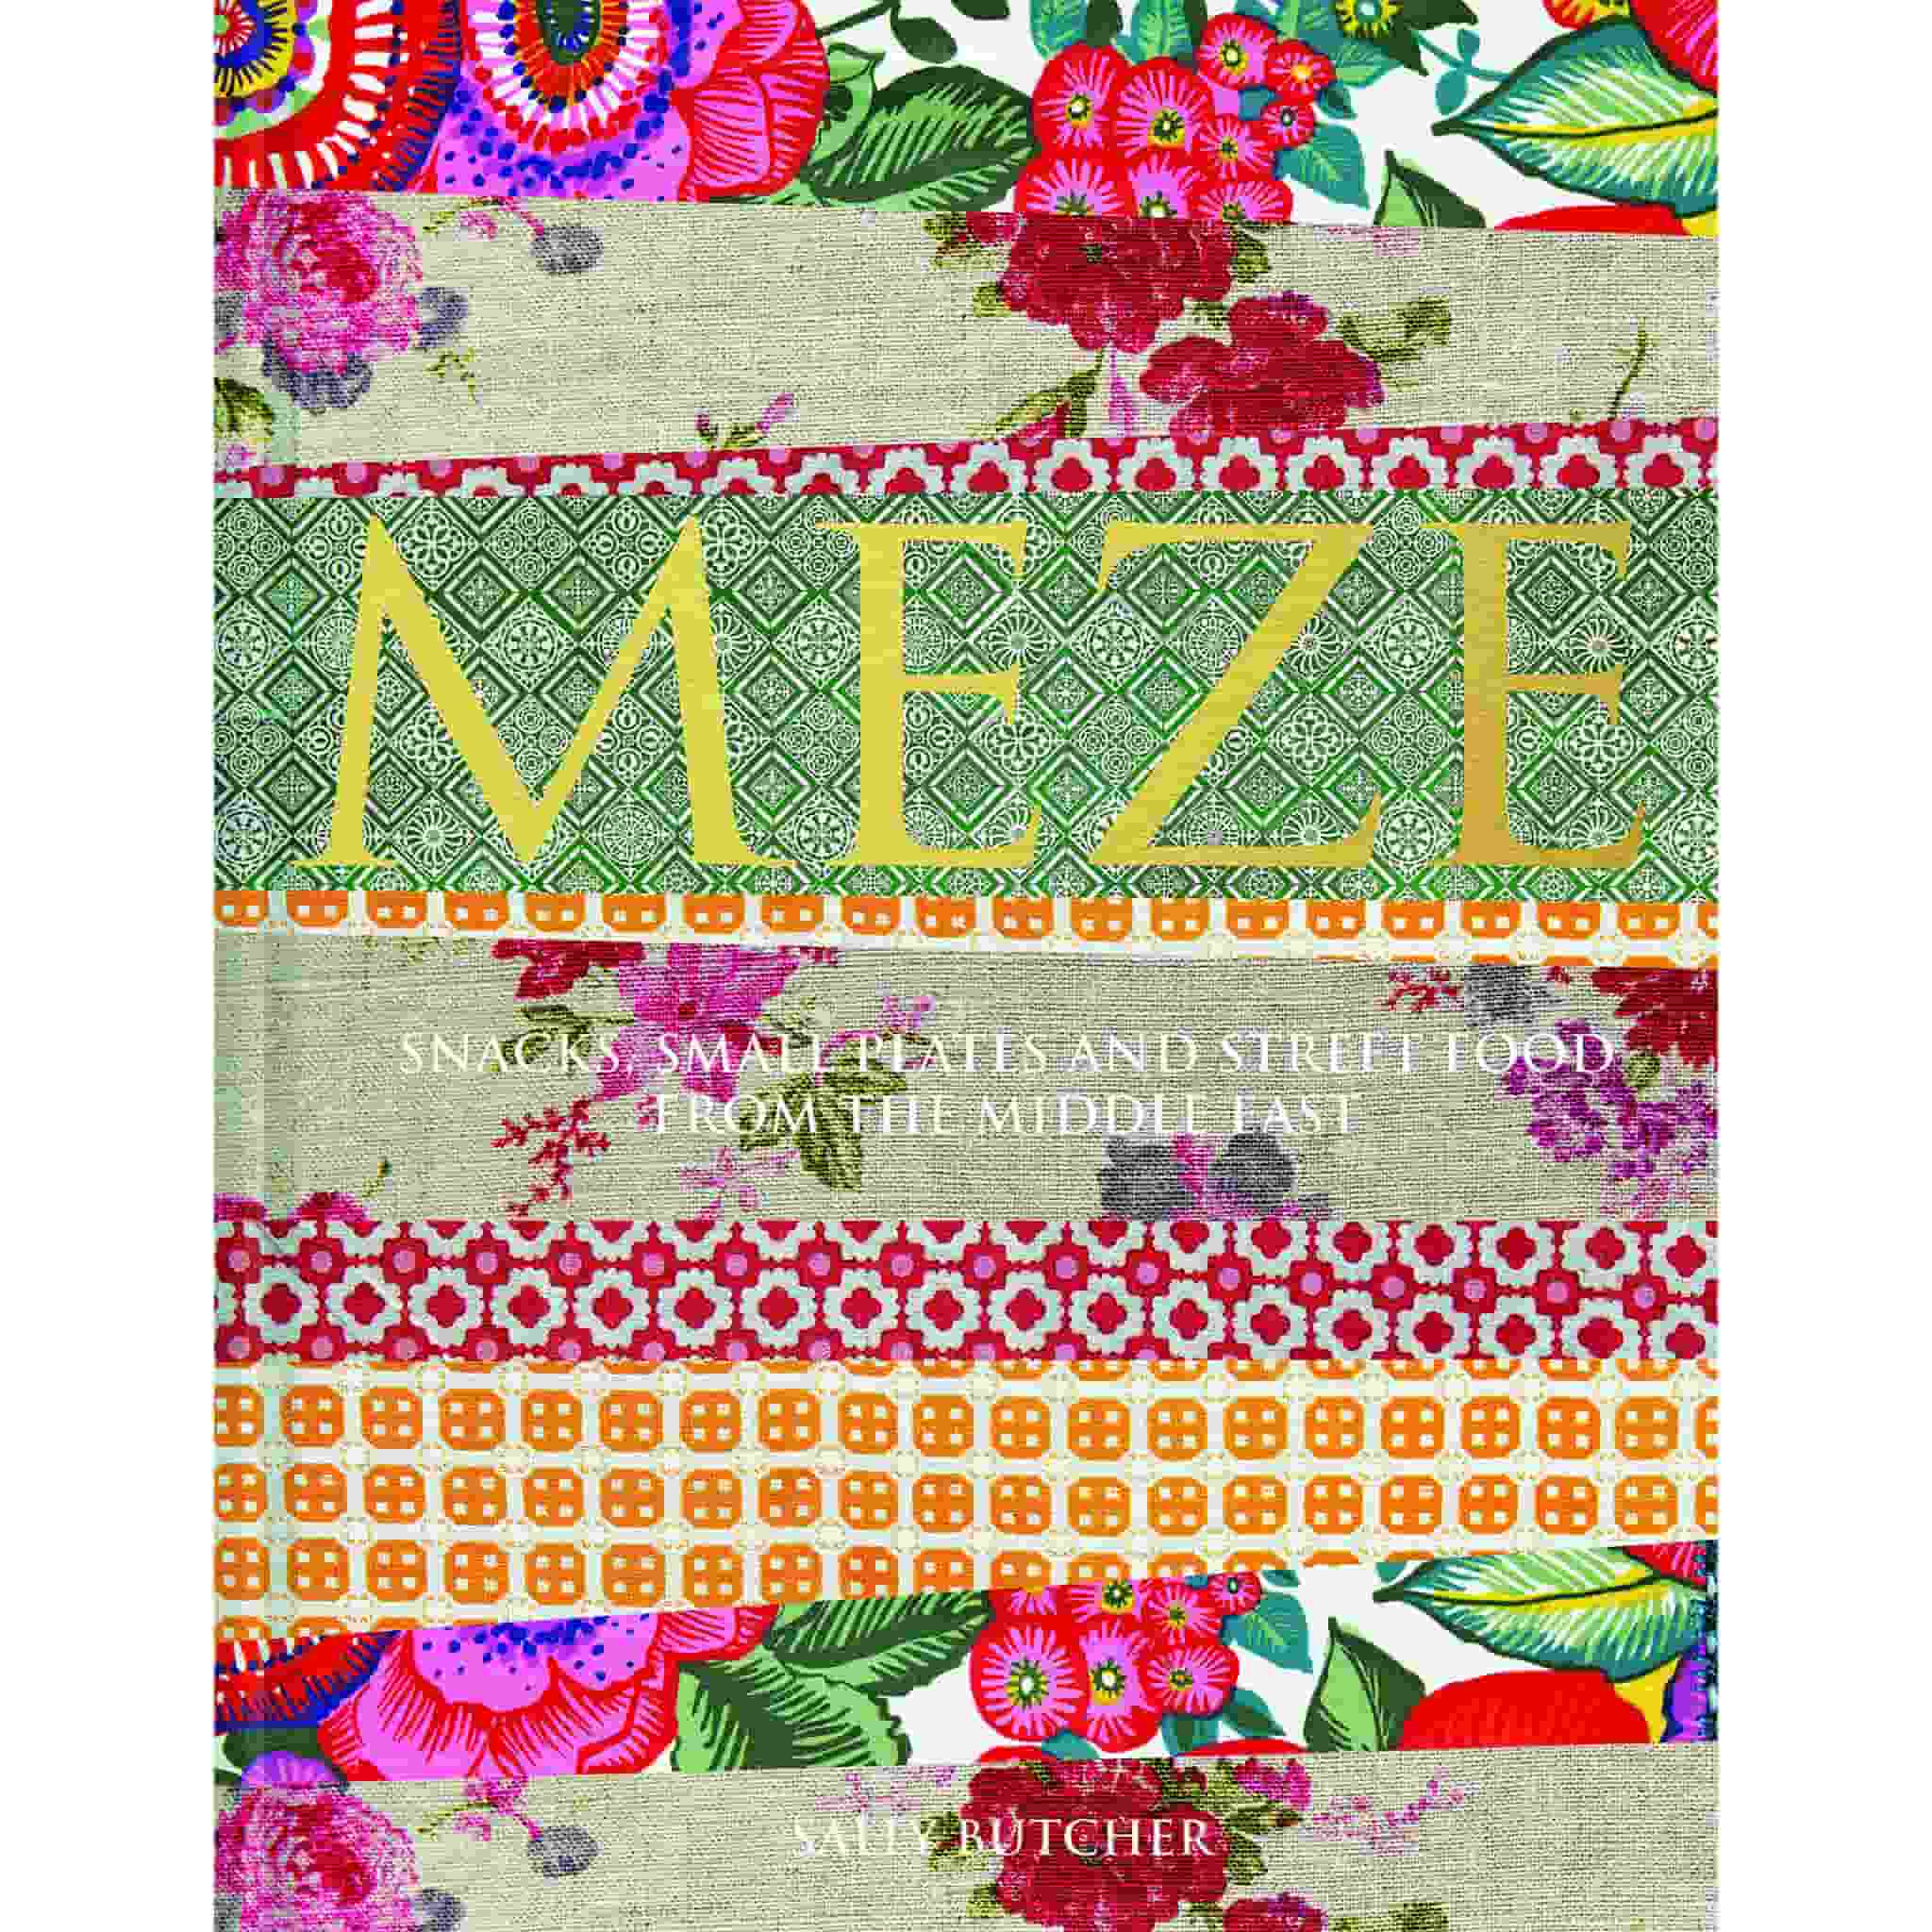 Meze by Sally Butcher